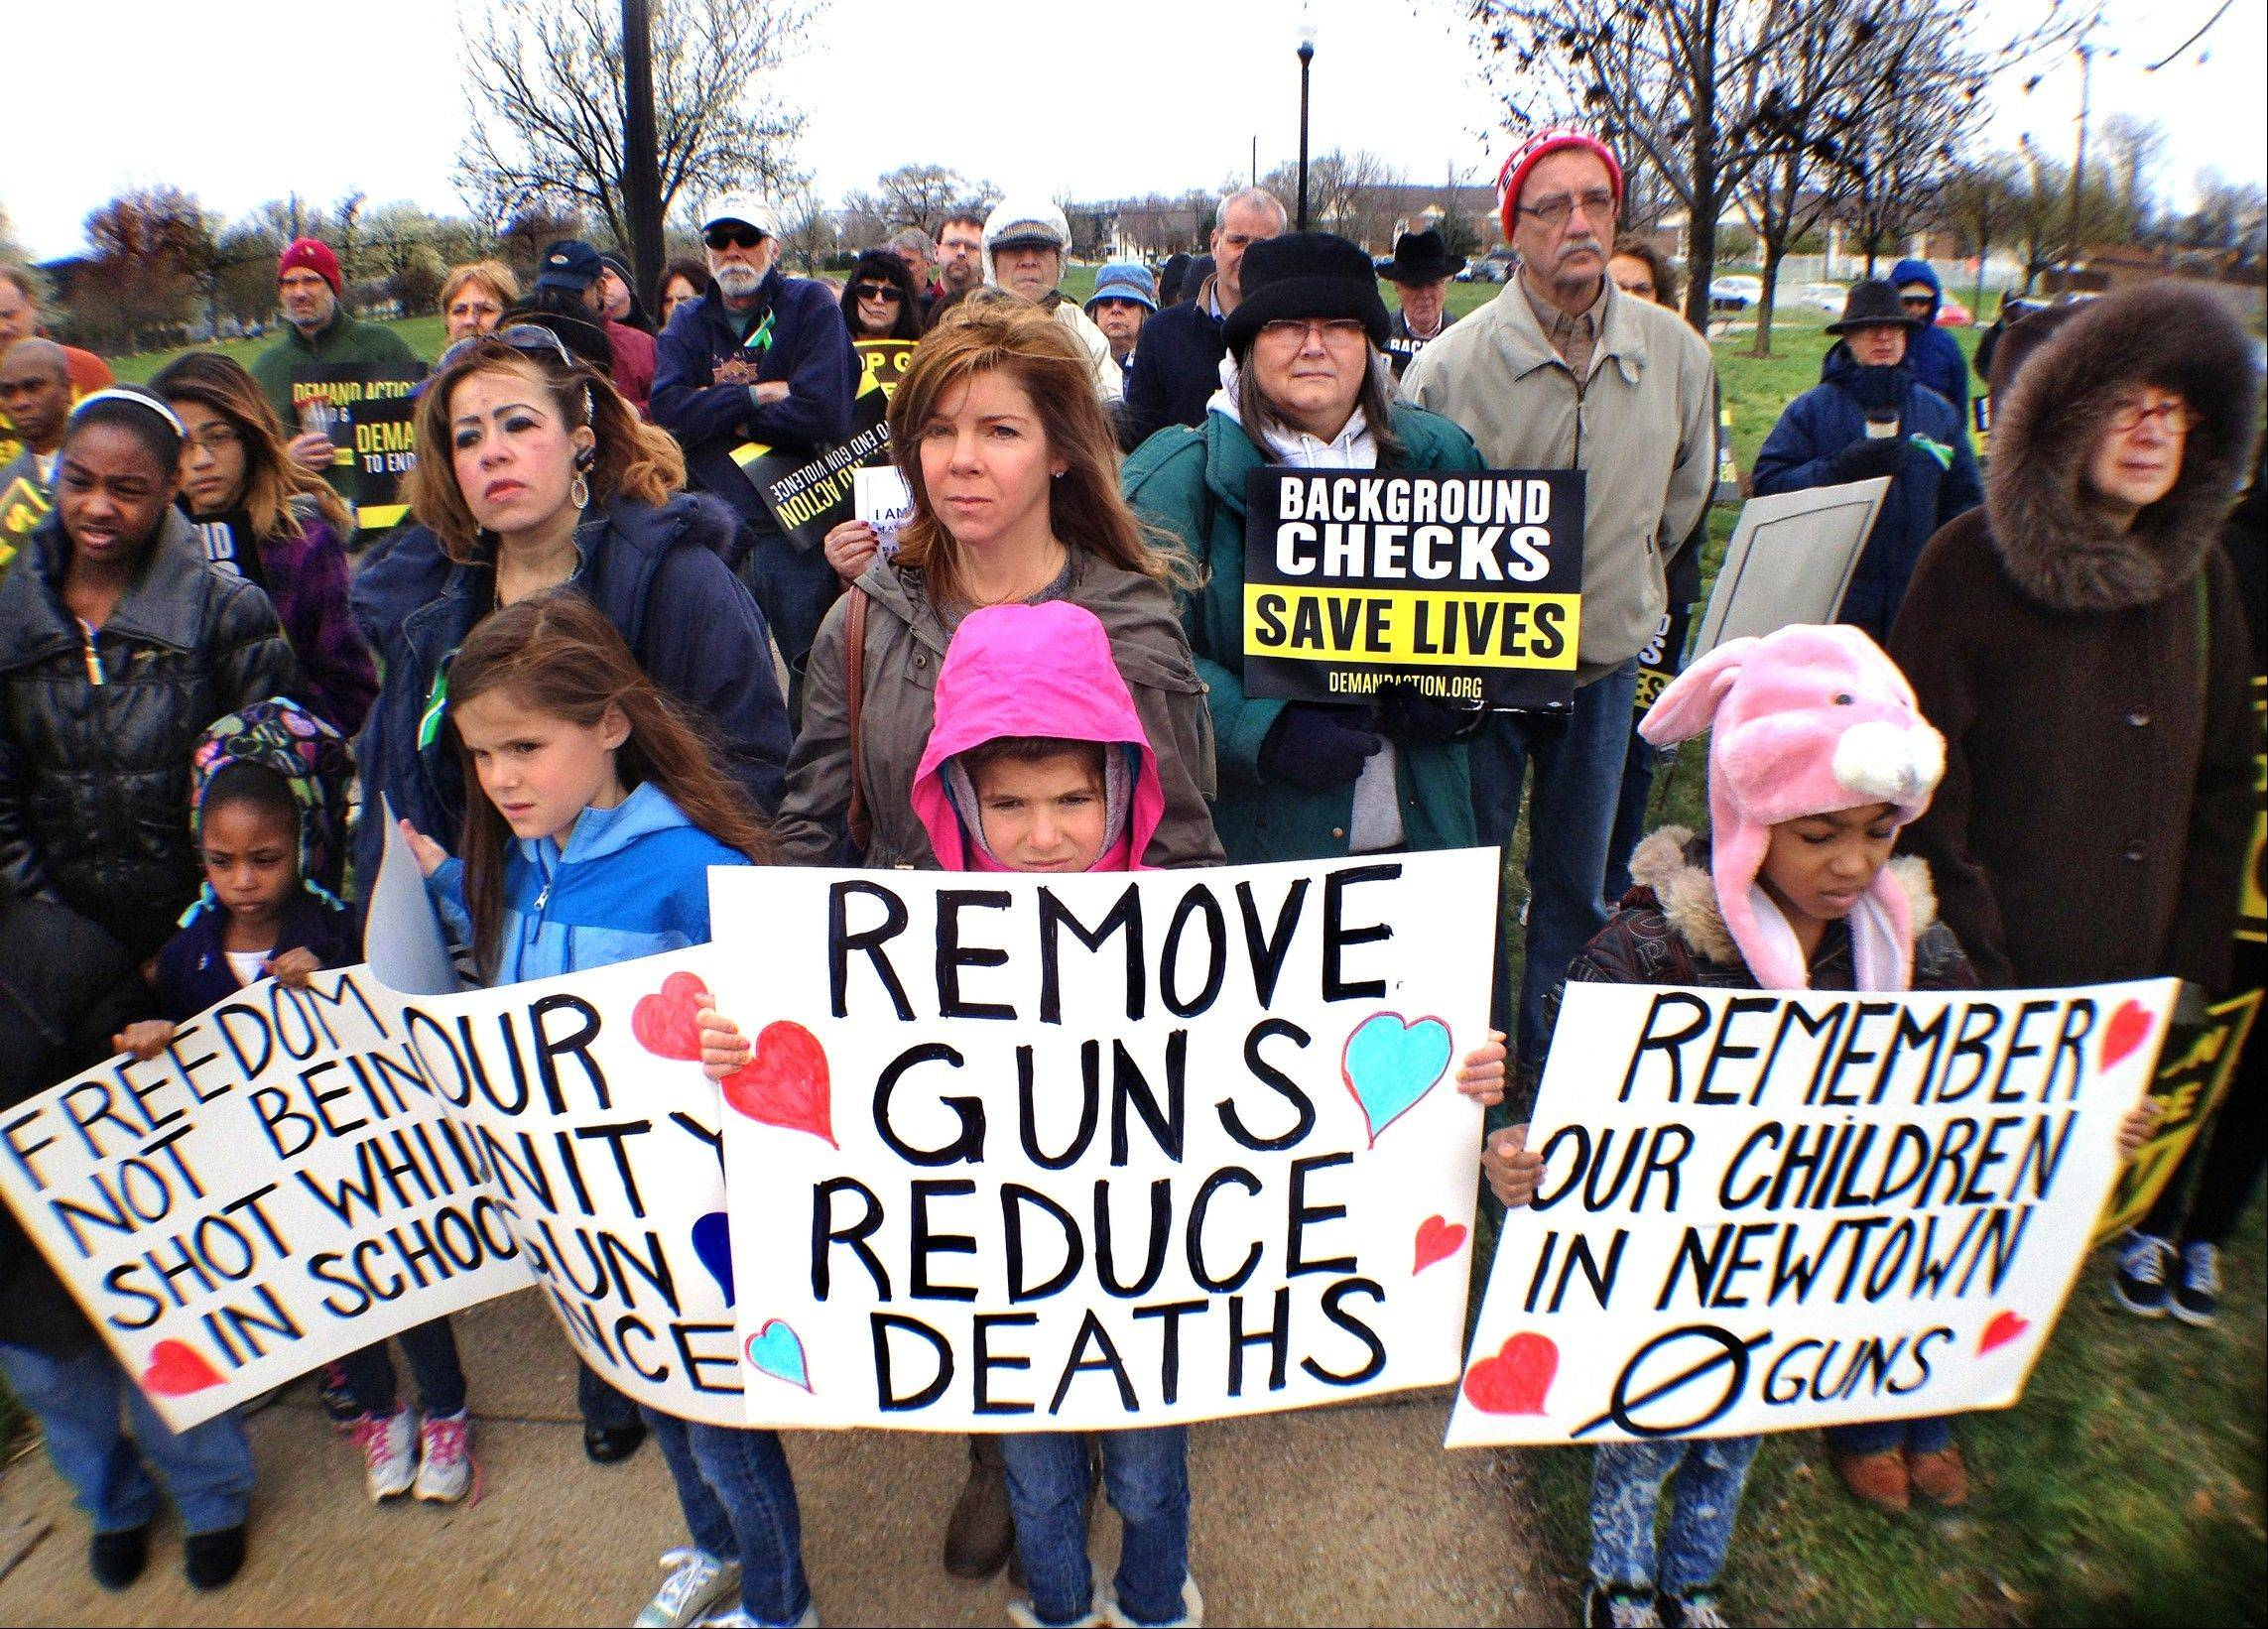 About 75 adults and children turned out for a gun control rally in Indianapolis Saturday. The rally was sponsored by Organizing for Action, Mayors Against Illegal Guns and Hoosiers Concerned About Gun Violence.